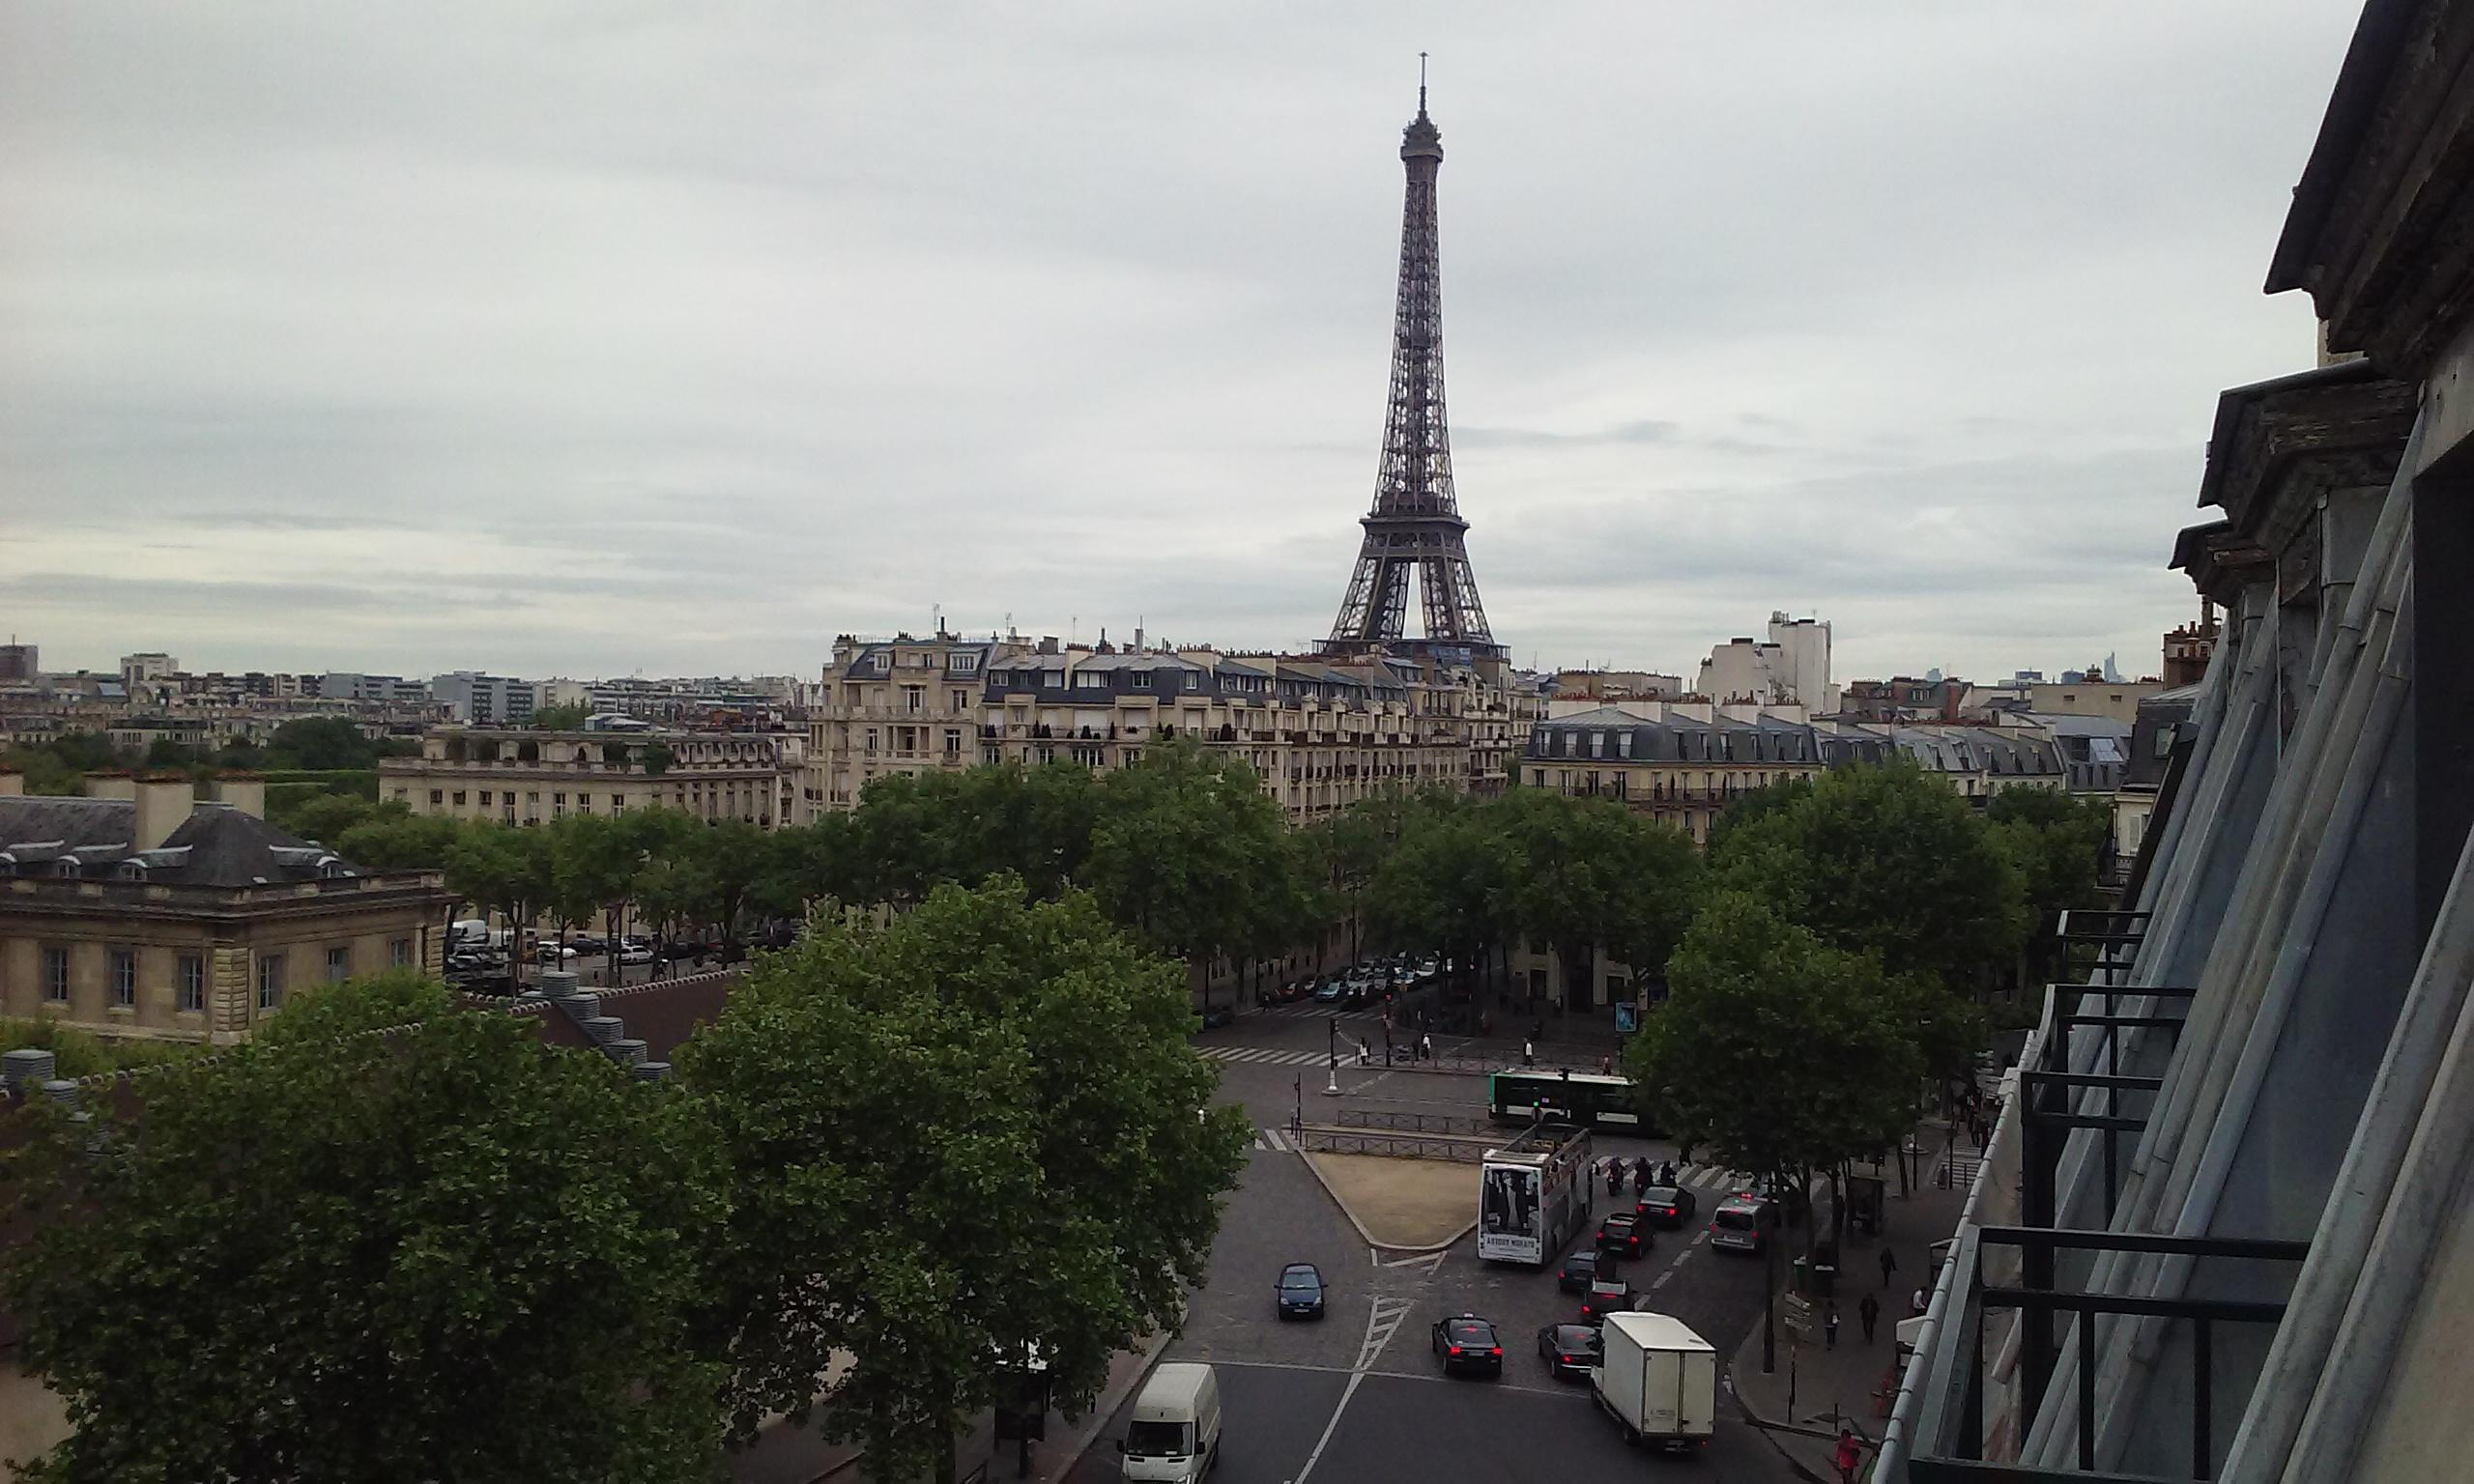 Eiffel Tower from the hotel balcony